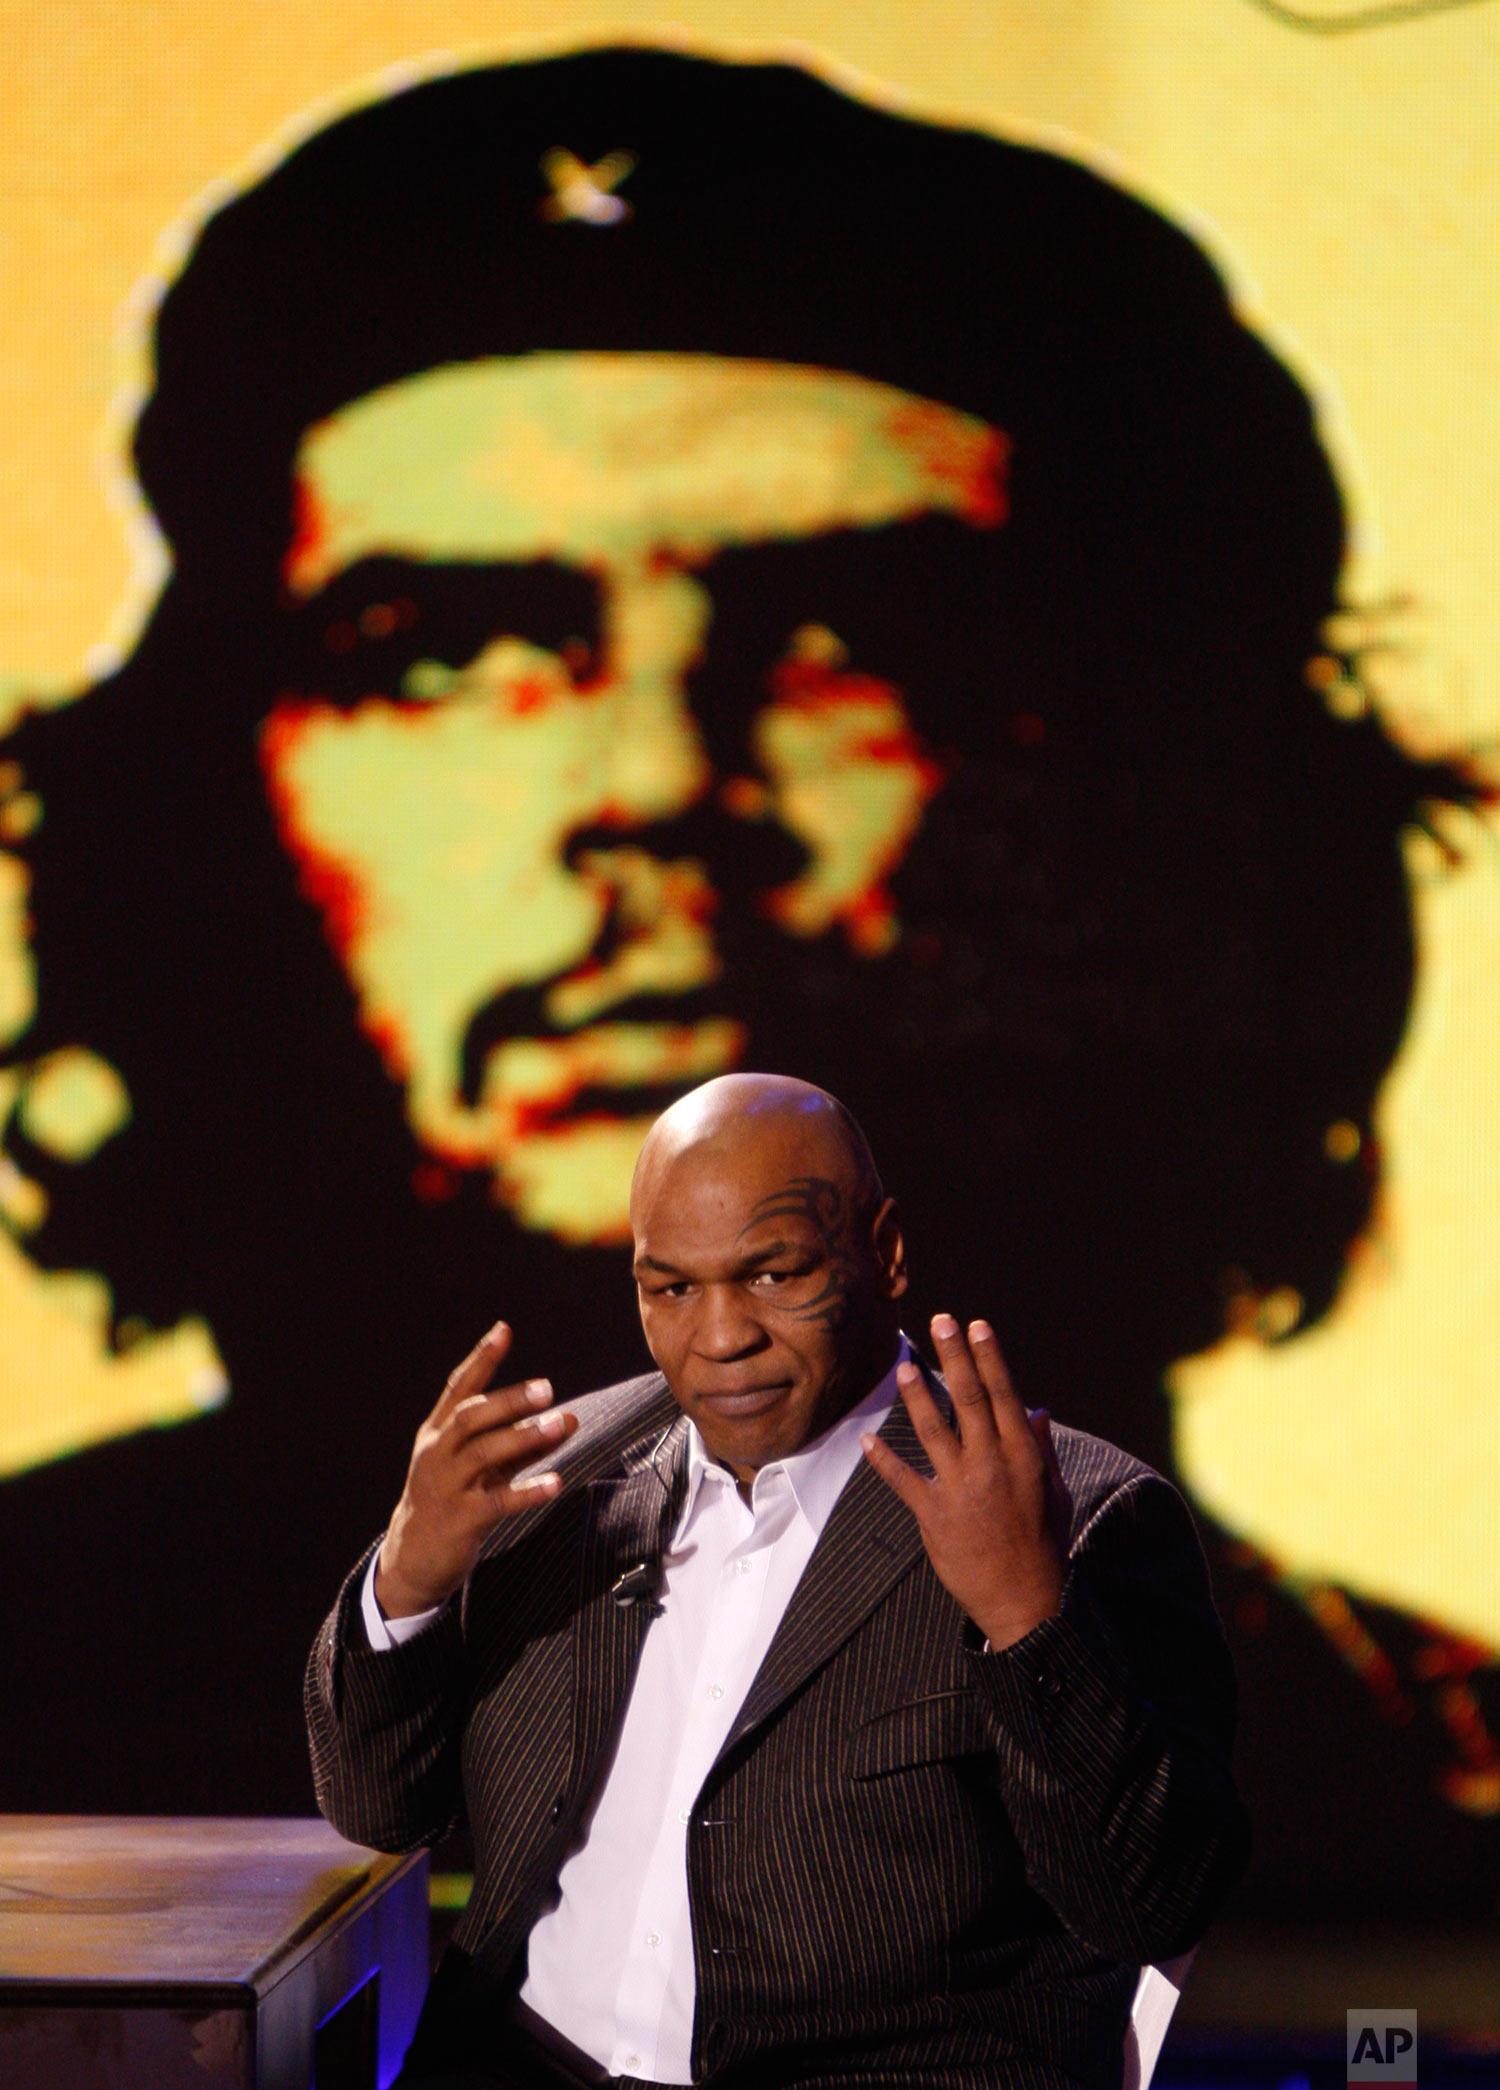 """Former heavyweight boxing champion Mike Tyson reacts as a picture of Che Guevara is projected on a giant screen, during the taping of the """"Chiambretti Night"""" television show in Milan, Italy, Monday, Jan. 25, 2010. (AP Photo/Luca Bruno)"""